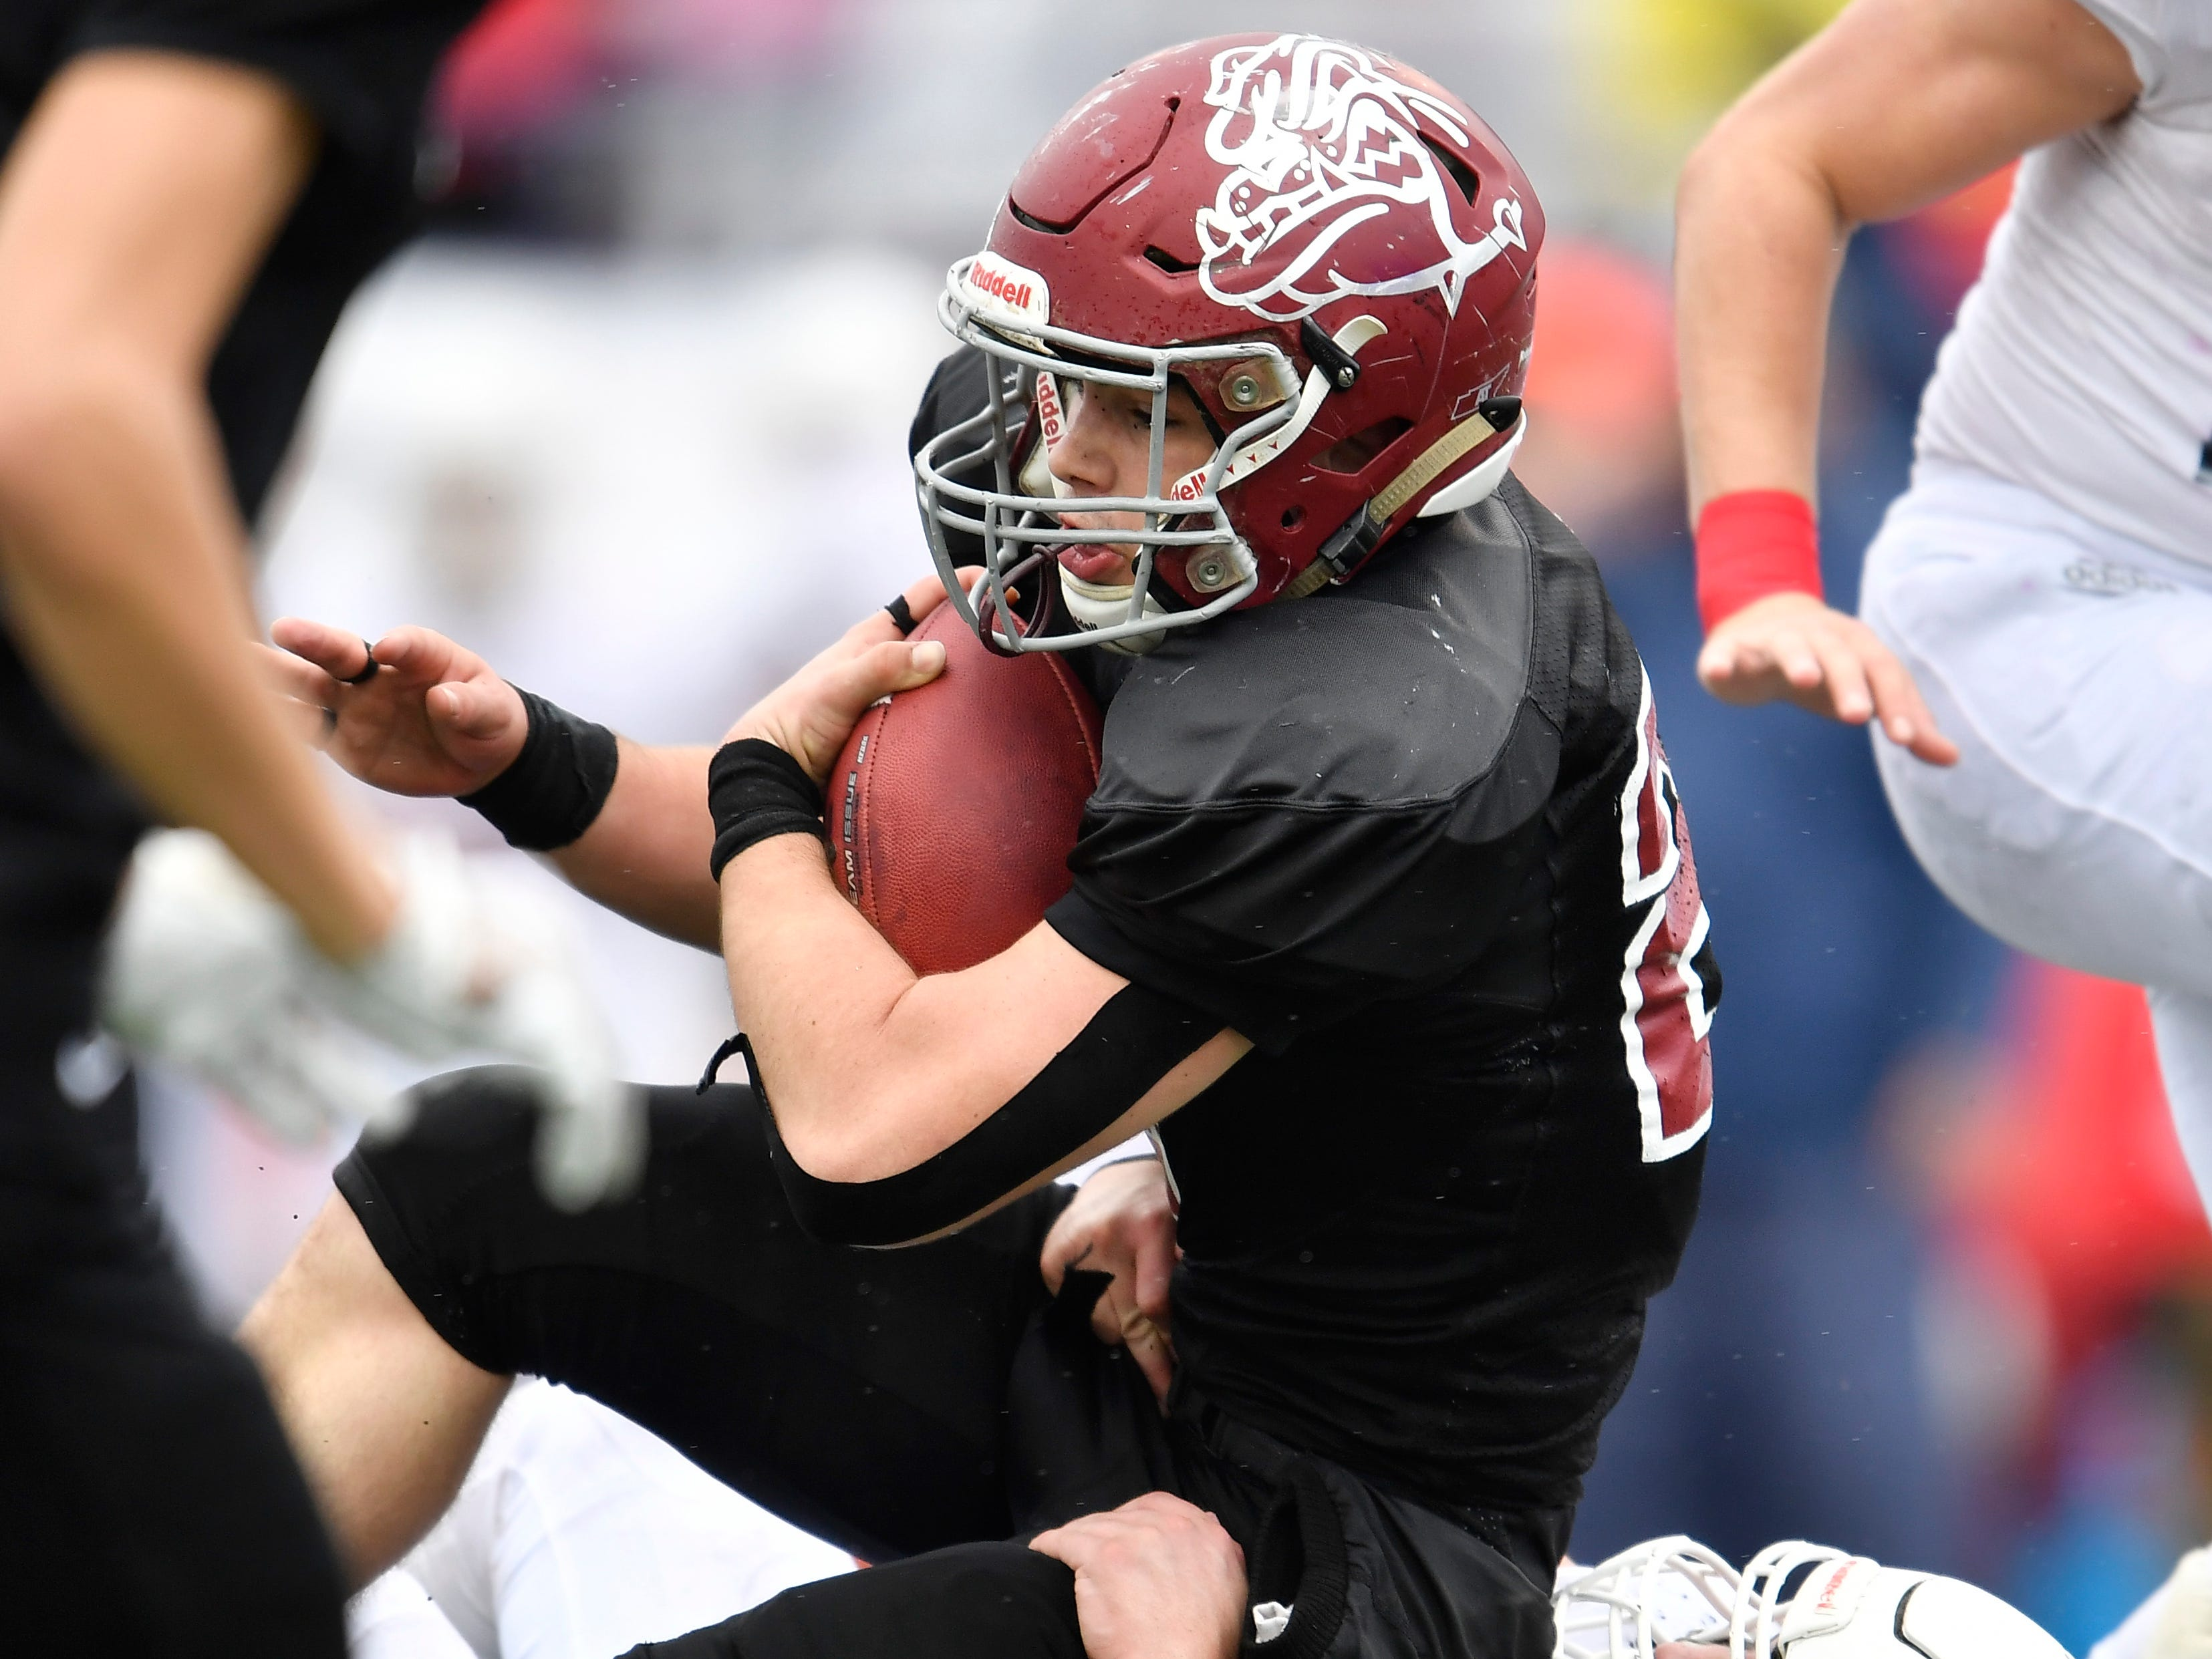 Cornersville's Eli Woodard (22) gets a first down in the second quarter at the Class I-A BlueCross Bowl state championship at Tennessee Tech's Tucker Stadium in Cookeville, Tenn., on Saturday, Dec. 1, 2018.